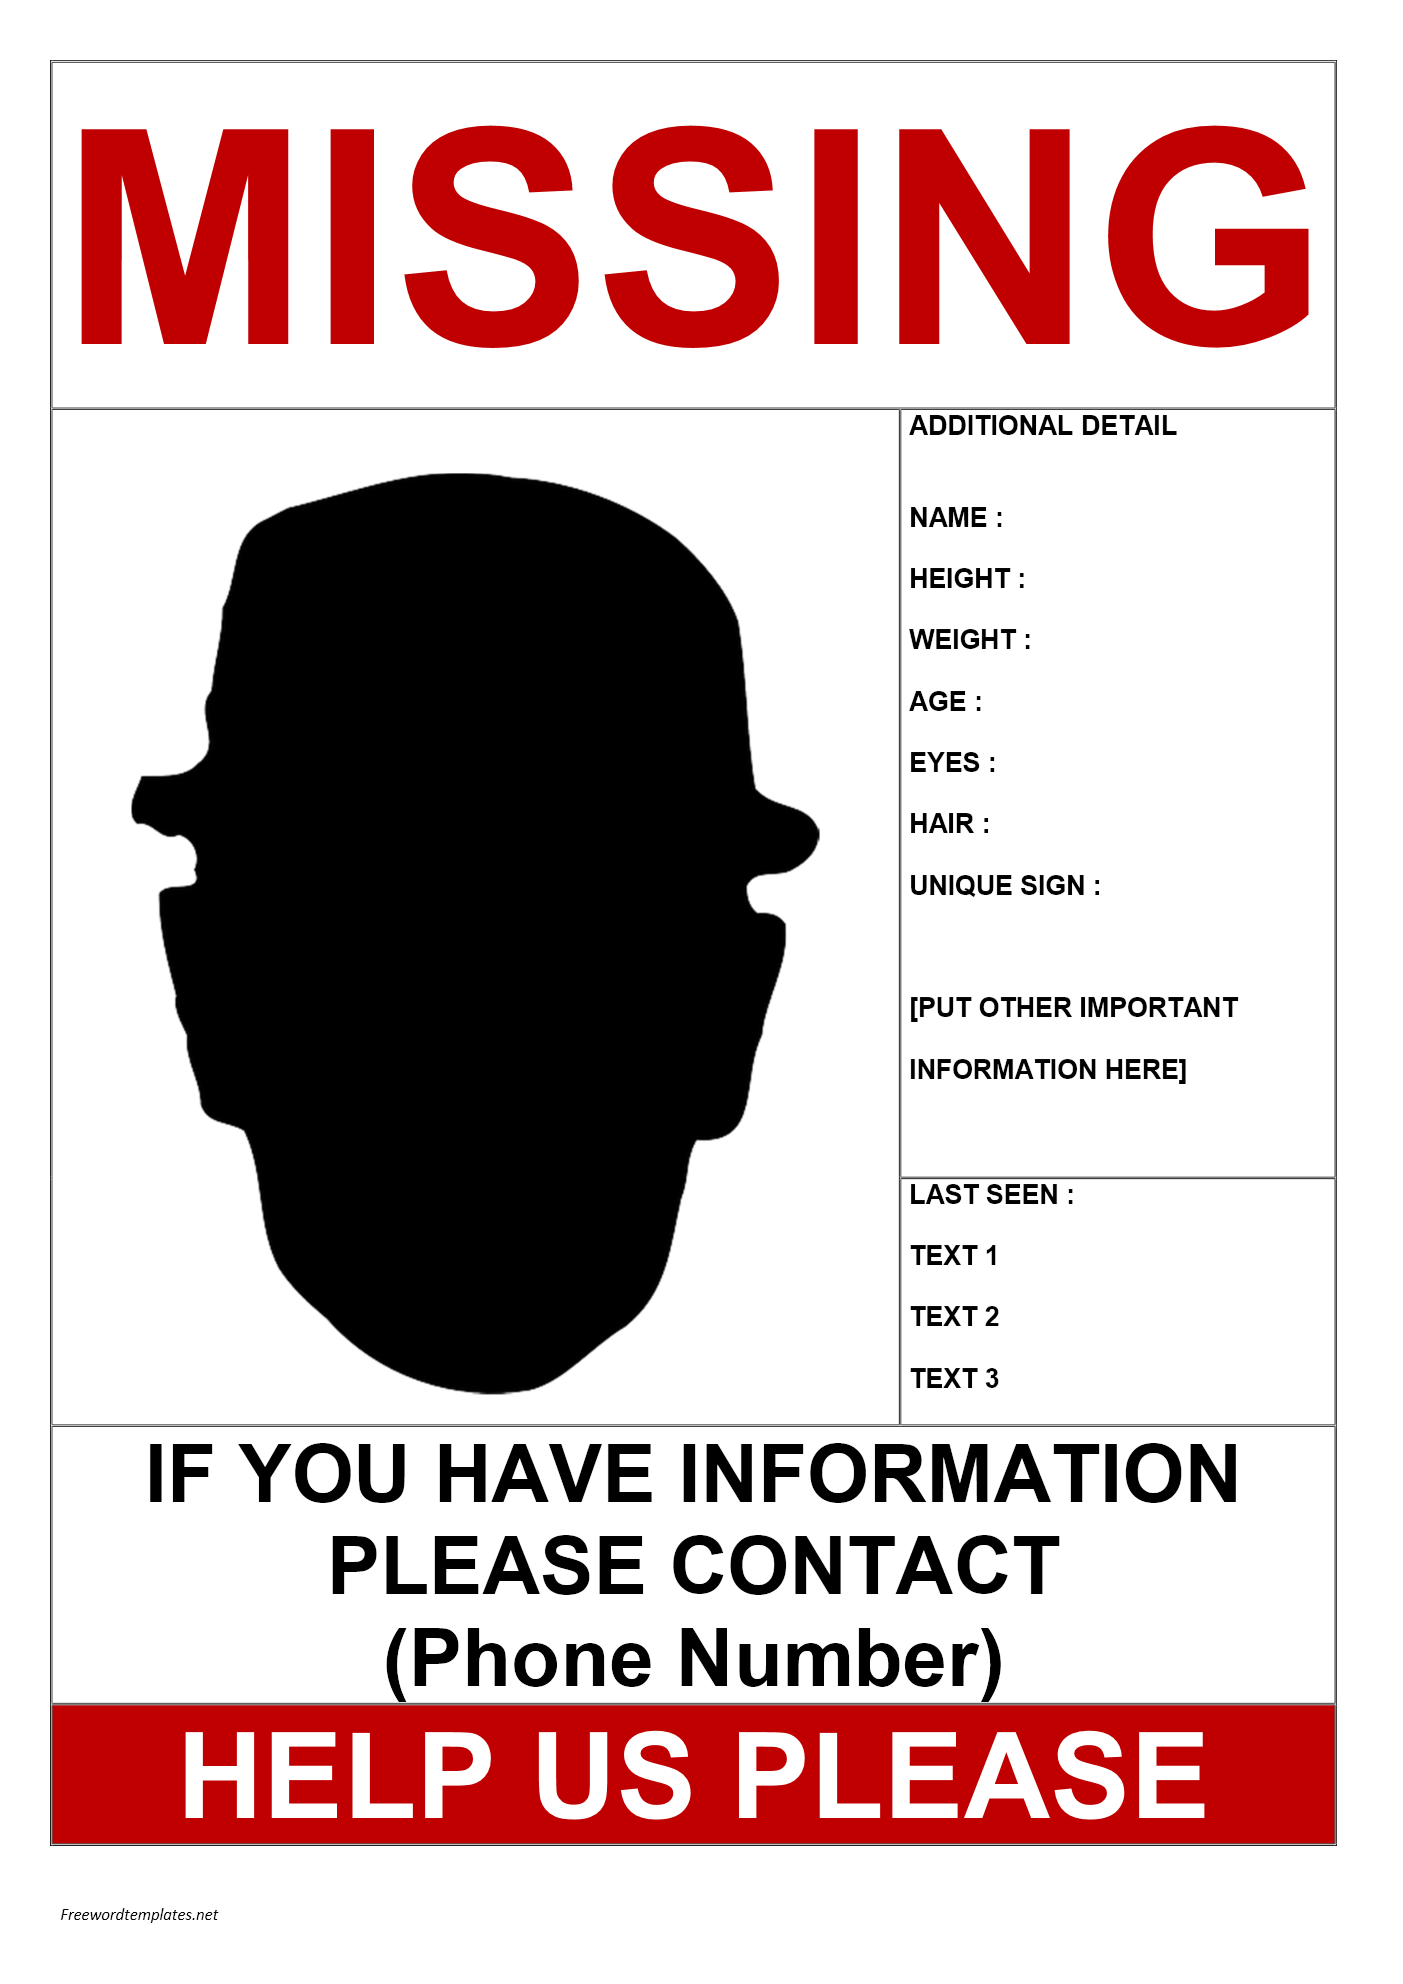 Missing Person Poster Template – Missing Person Picture